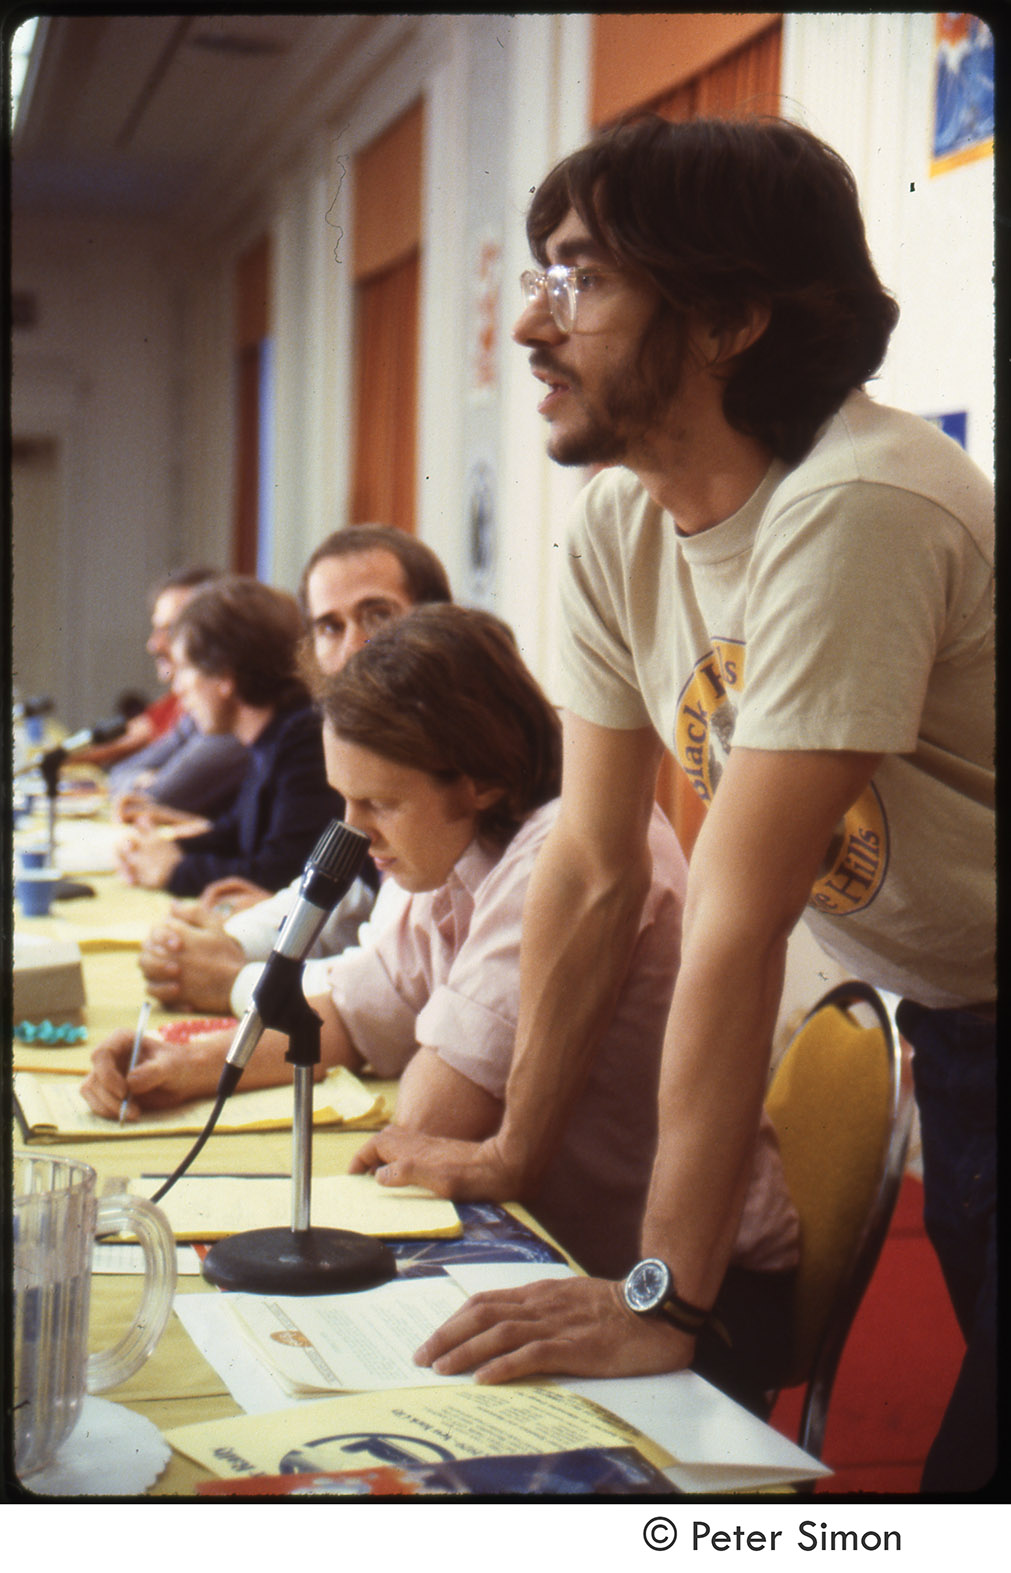 Depiction of Harvey Wasserman at MUSE press conference, 1979